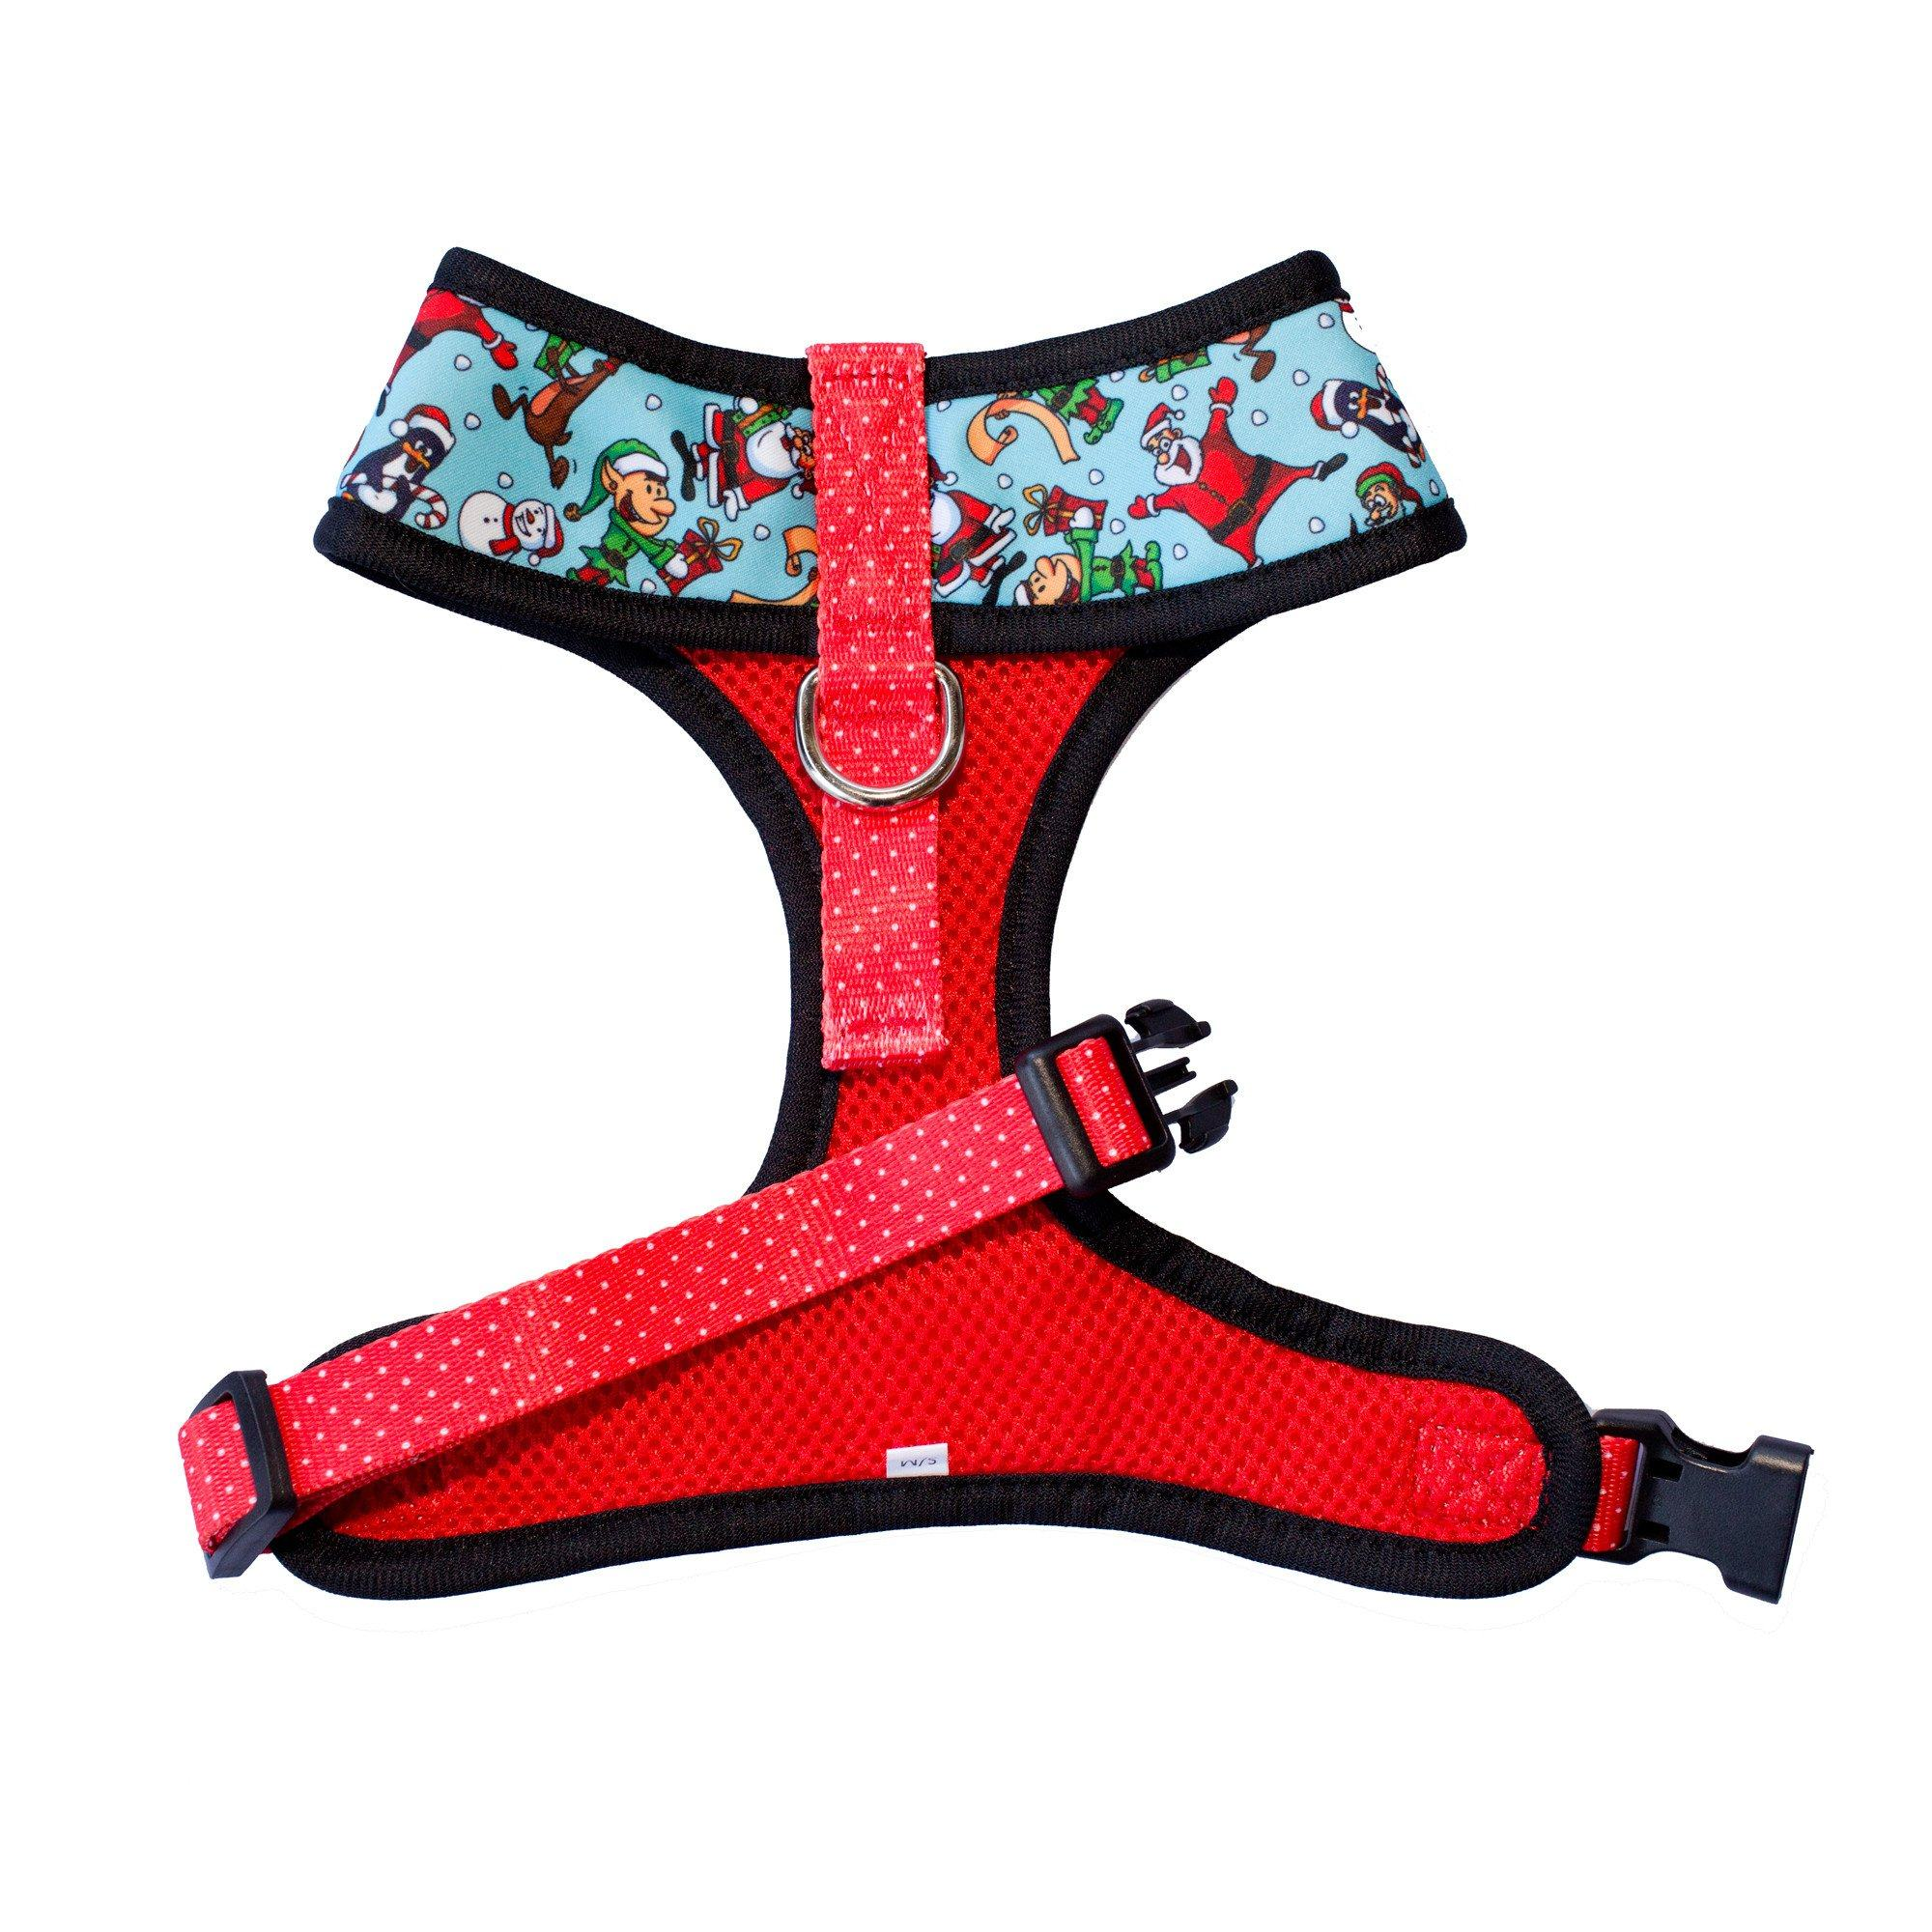 Saint Nick (Christmas Dog Harness) - Standard Dog Harness-Harness-Dizzy Dog Collars-Extra Small-Dizzy Dog Collars